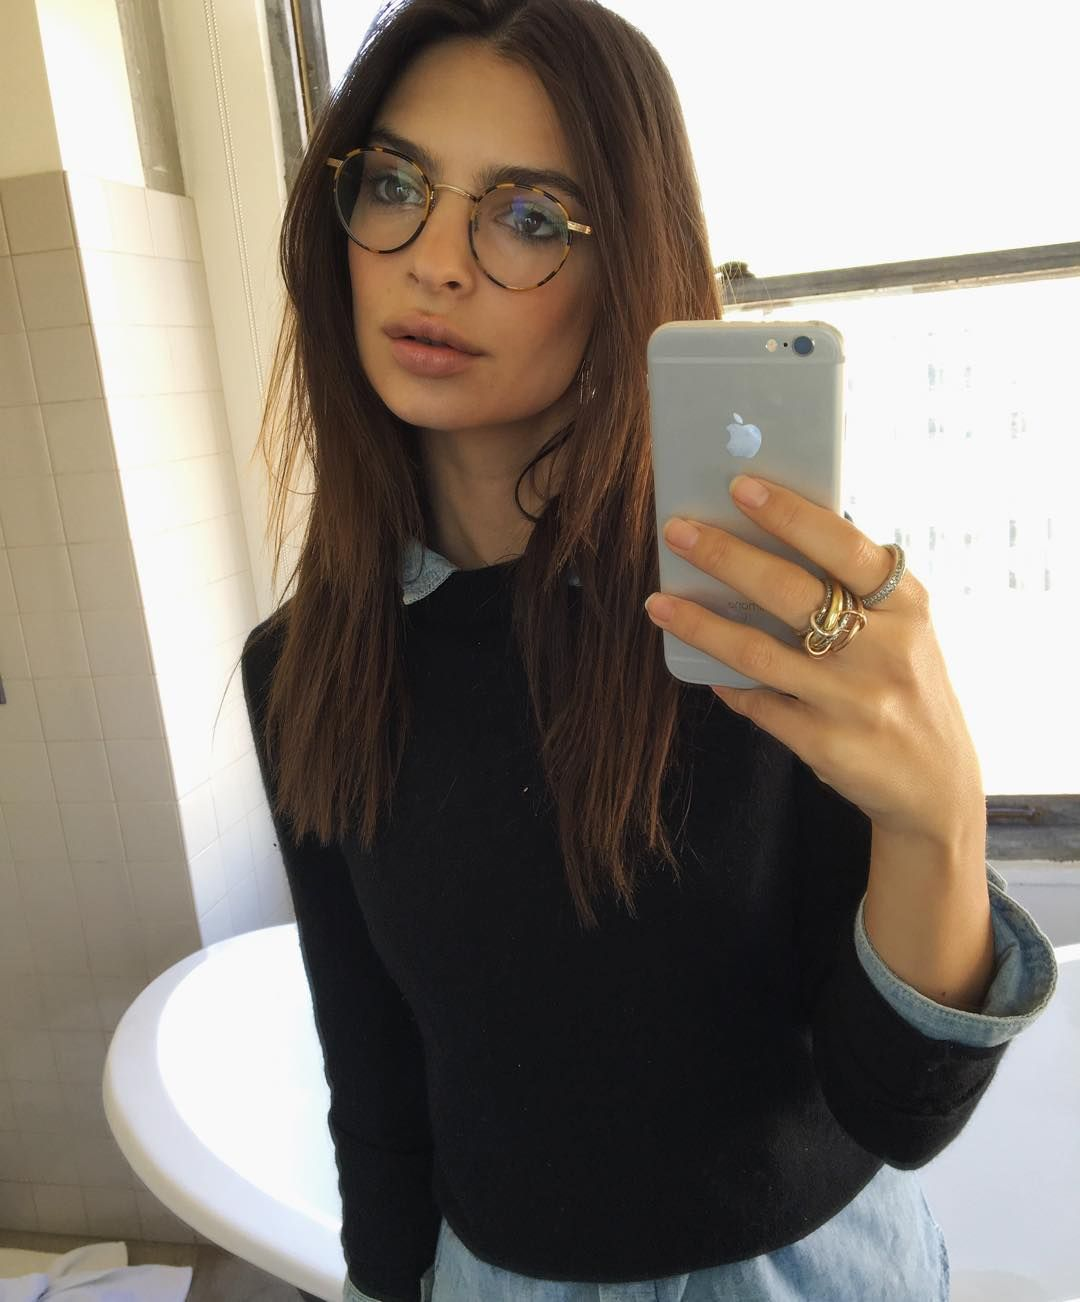 bfd9c922e1 Emily Ratajkowski proves it s chic to be a geek